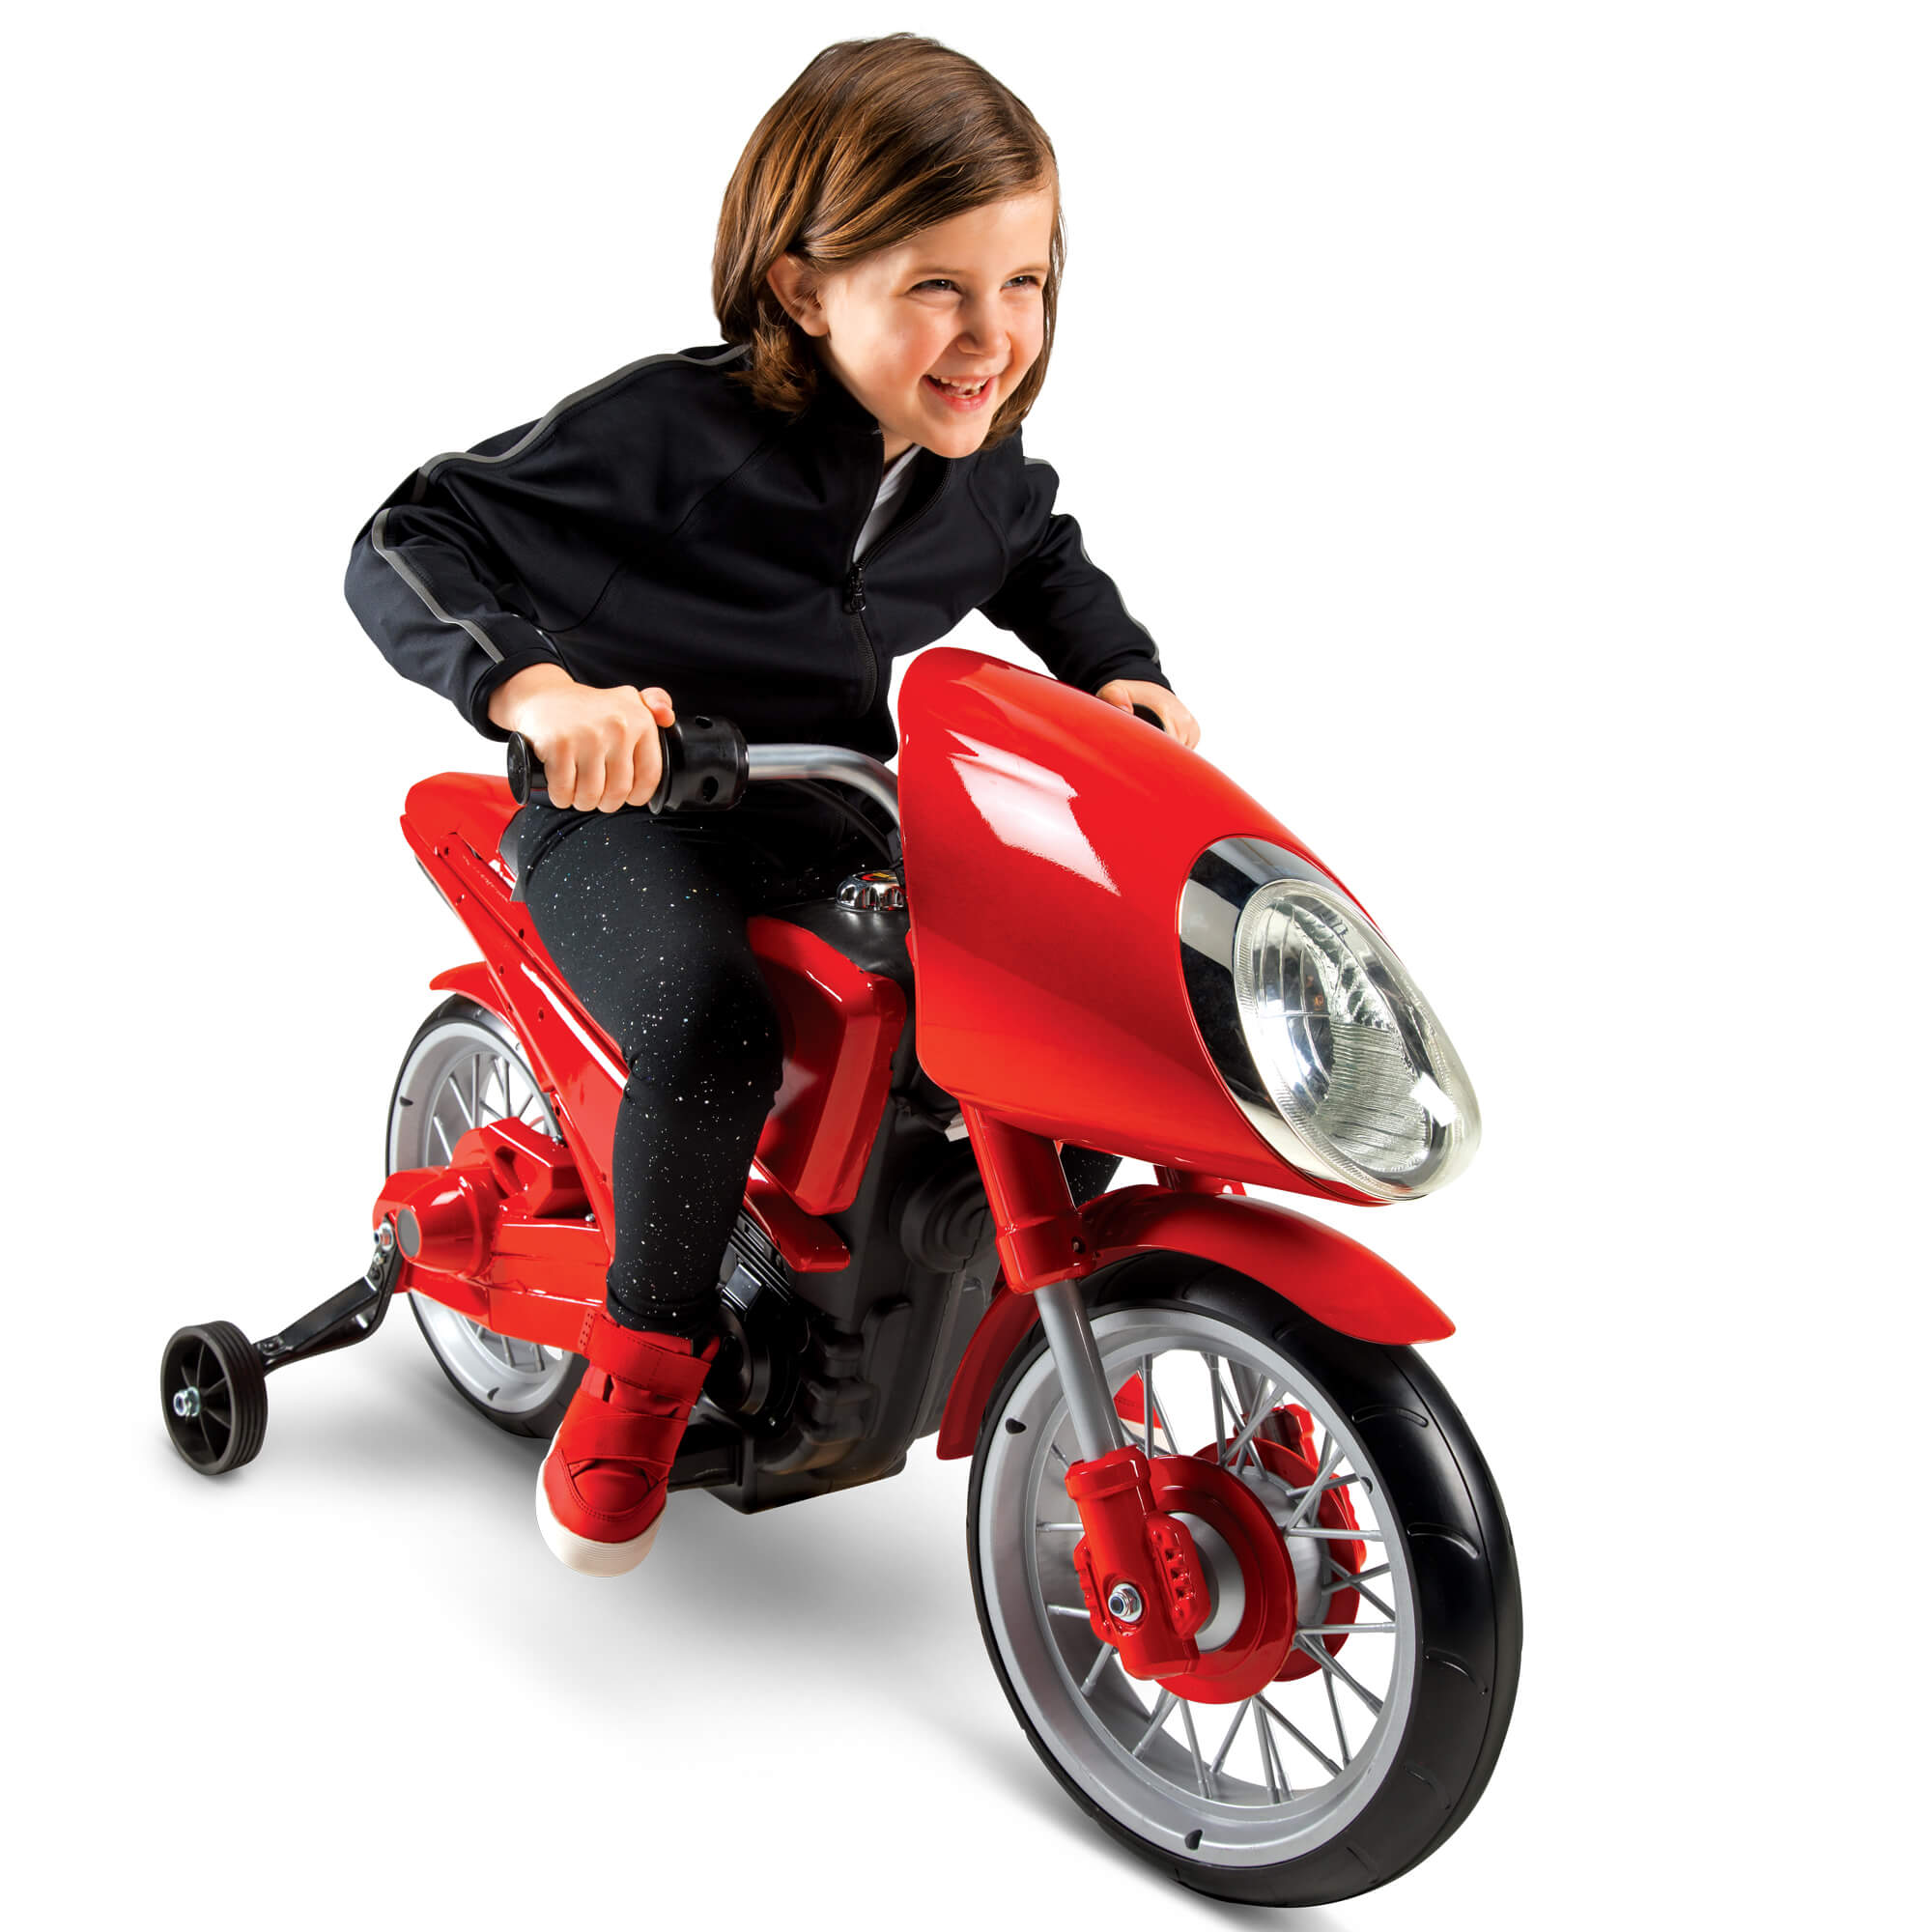 Disney   Pixar Incredibles 2 Elasticycle 6-volt Battery-Powered Ride-On by Huffy by Huffy